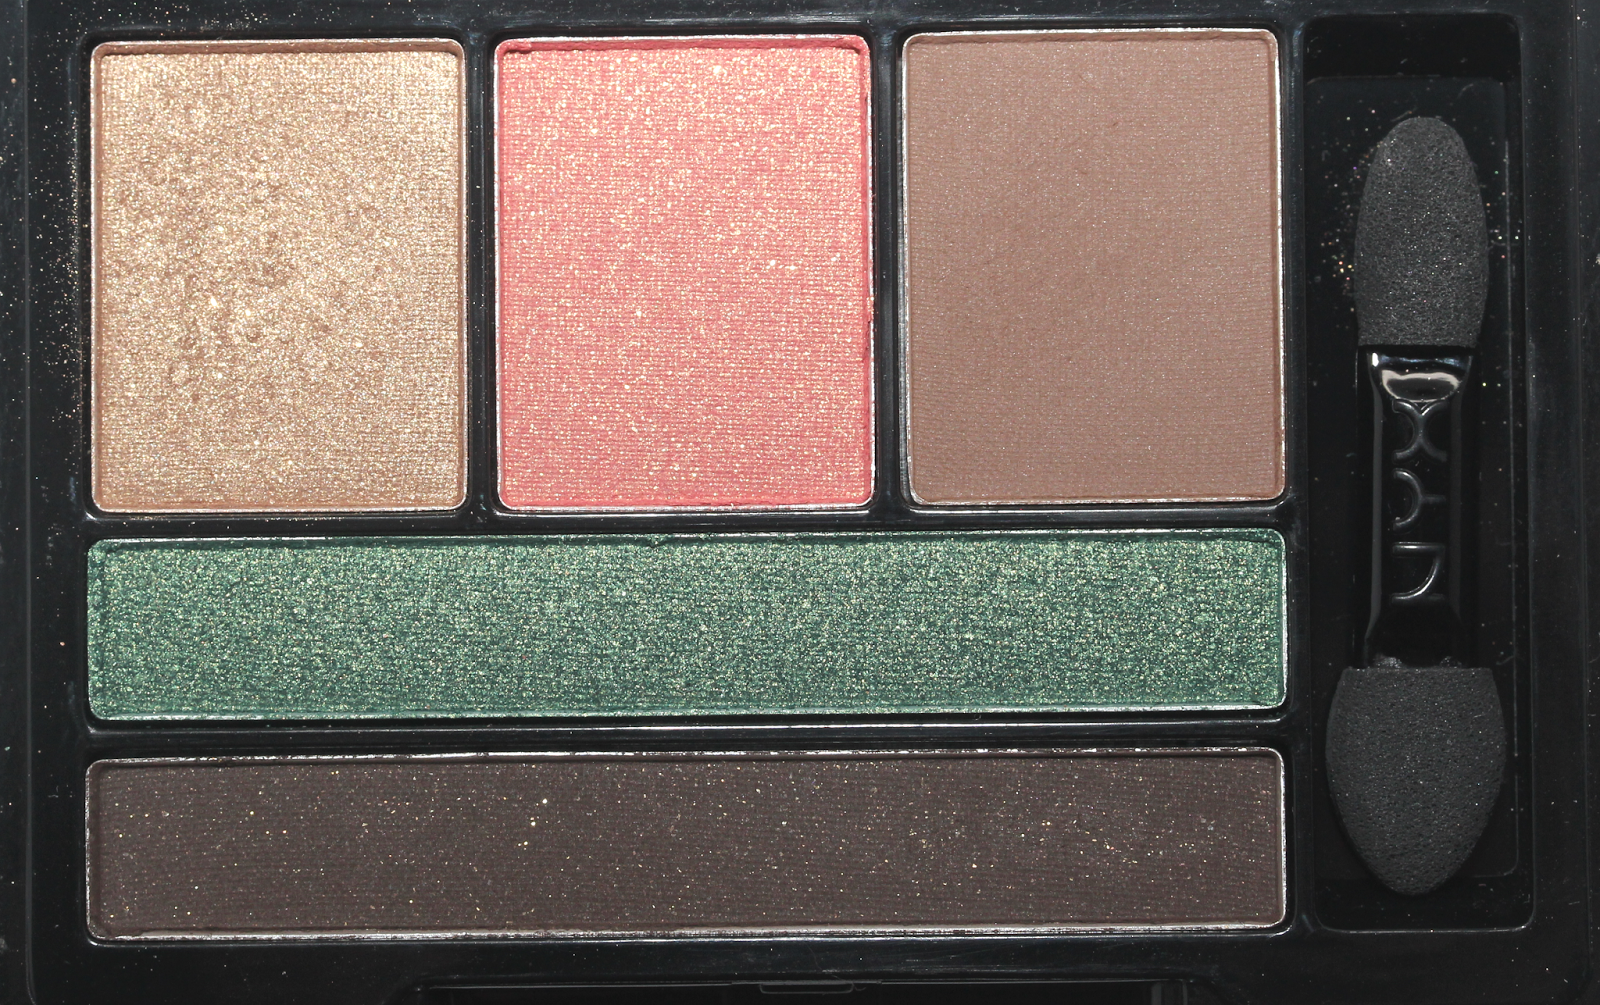 NYX COSMETICS LOVE IN FLORENCE EYESHADOW PALETTE IN EAT, LOVE, BE